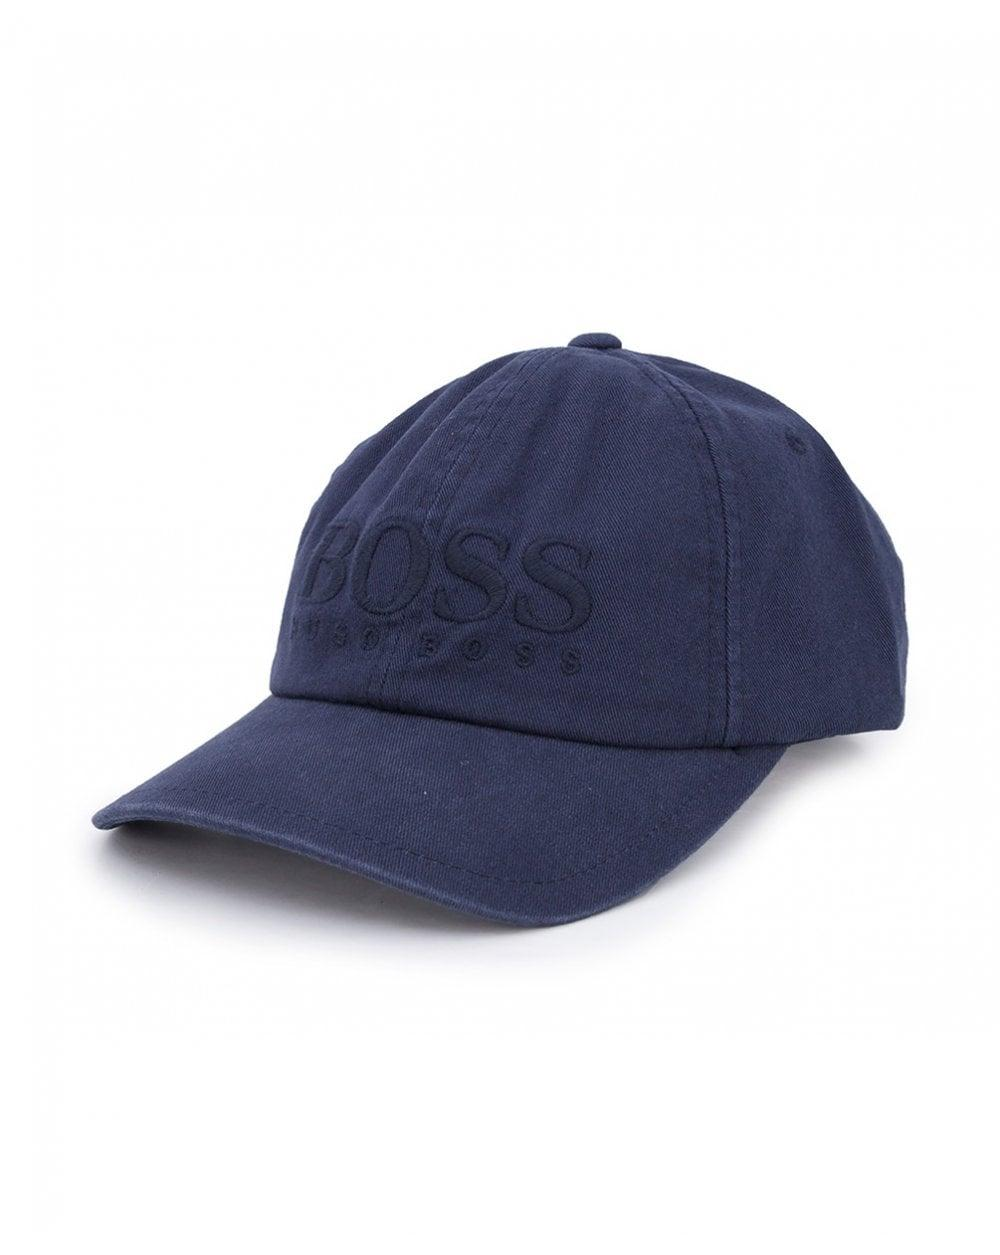 BOSS Fritz Cap in Blue for Men - Lyst 62a7f7dfc7b7